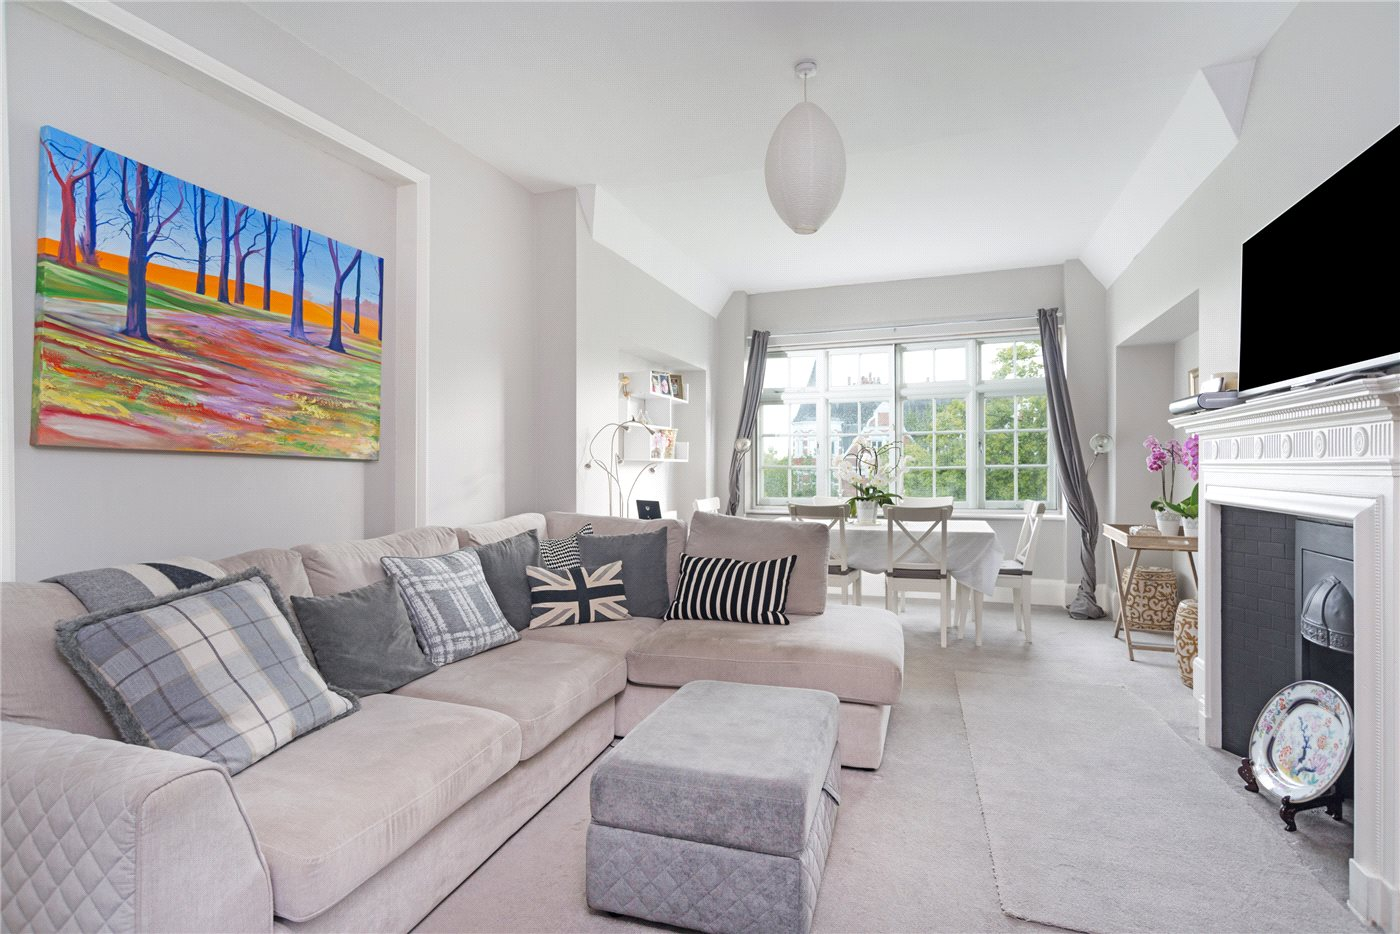 5 Bedroom Property For Sale In Clifton Court St Johns Wood London NW8